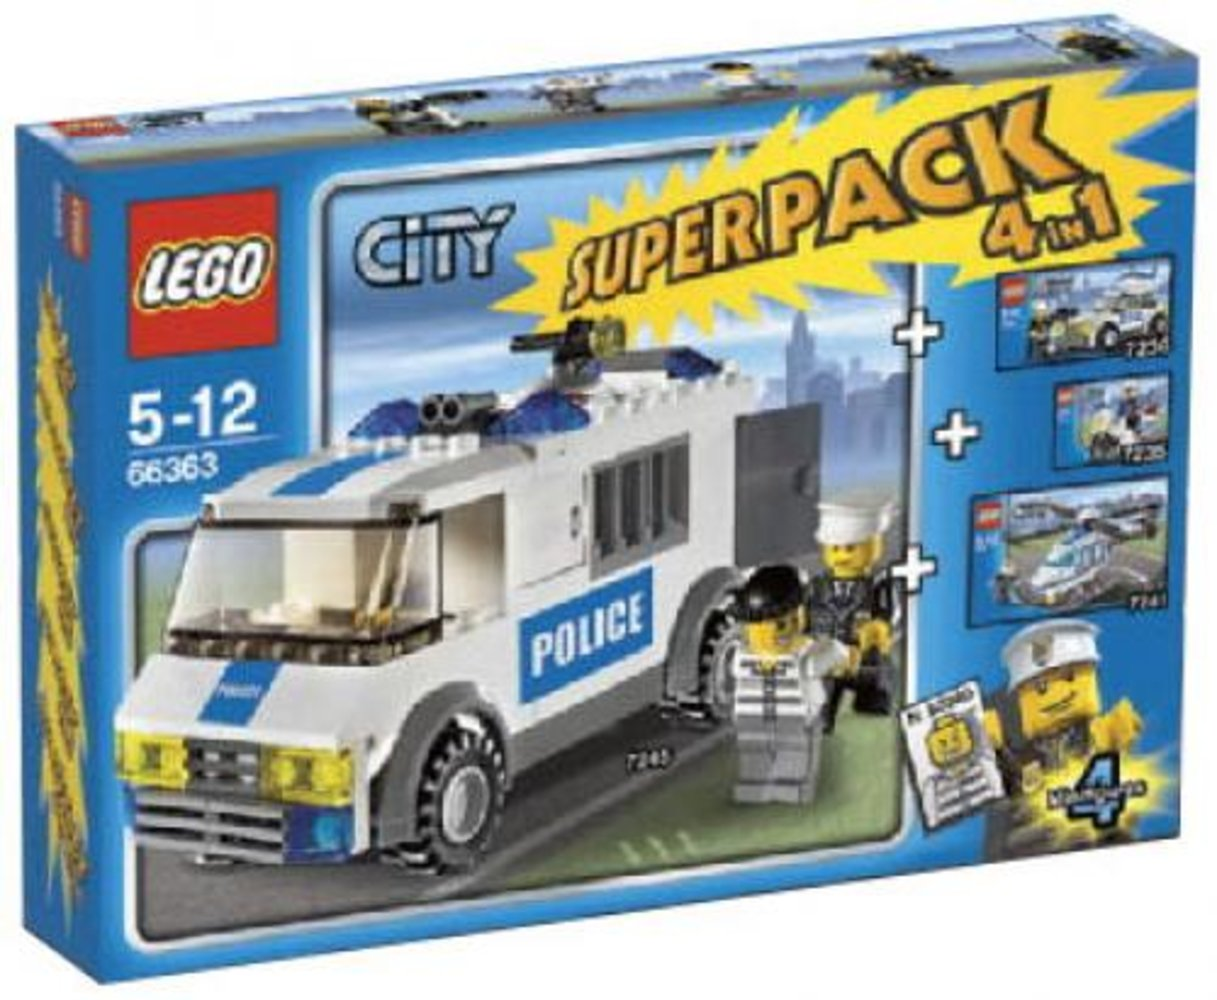 City Super Pack 4 in 1 (7235 7236 7245 7741)